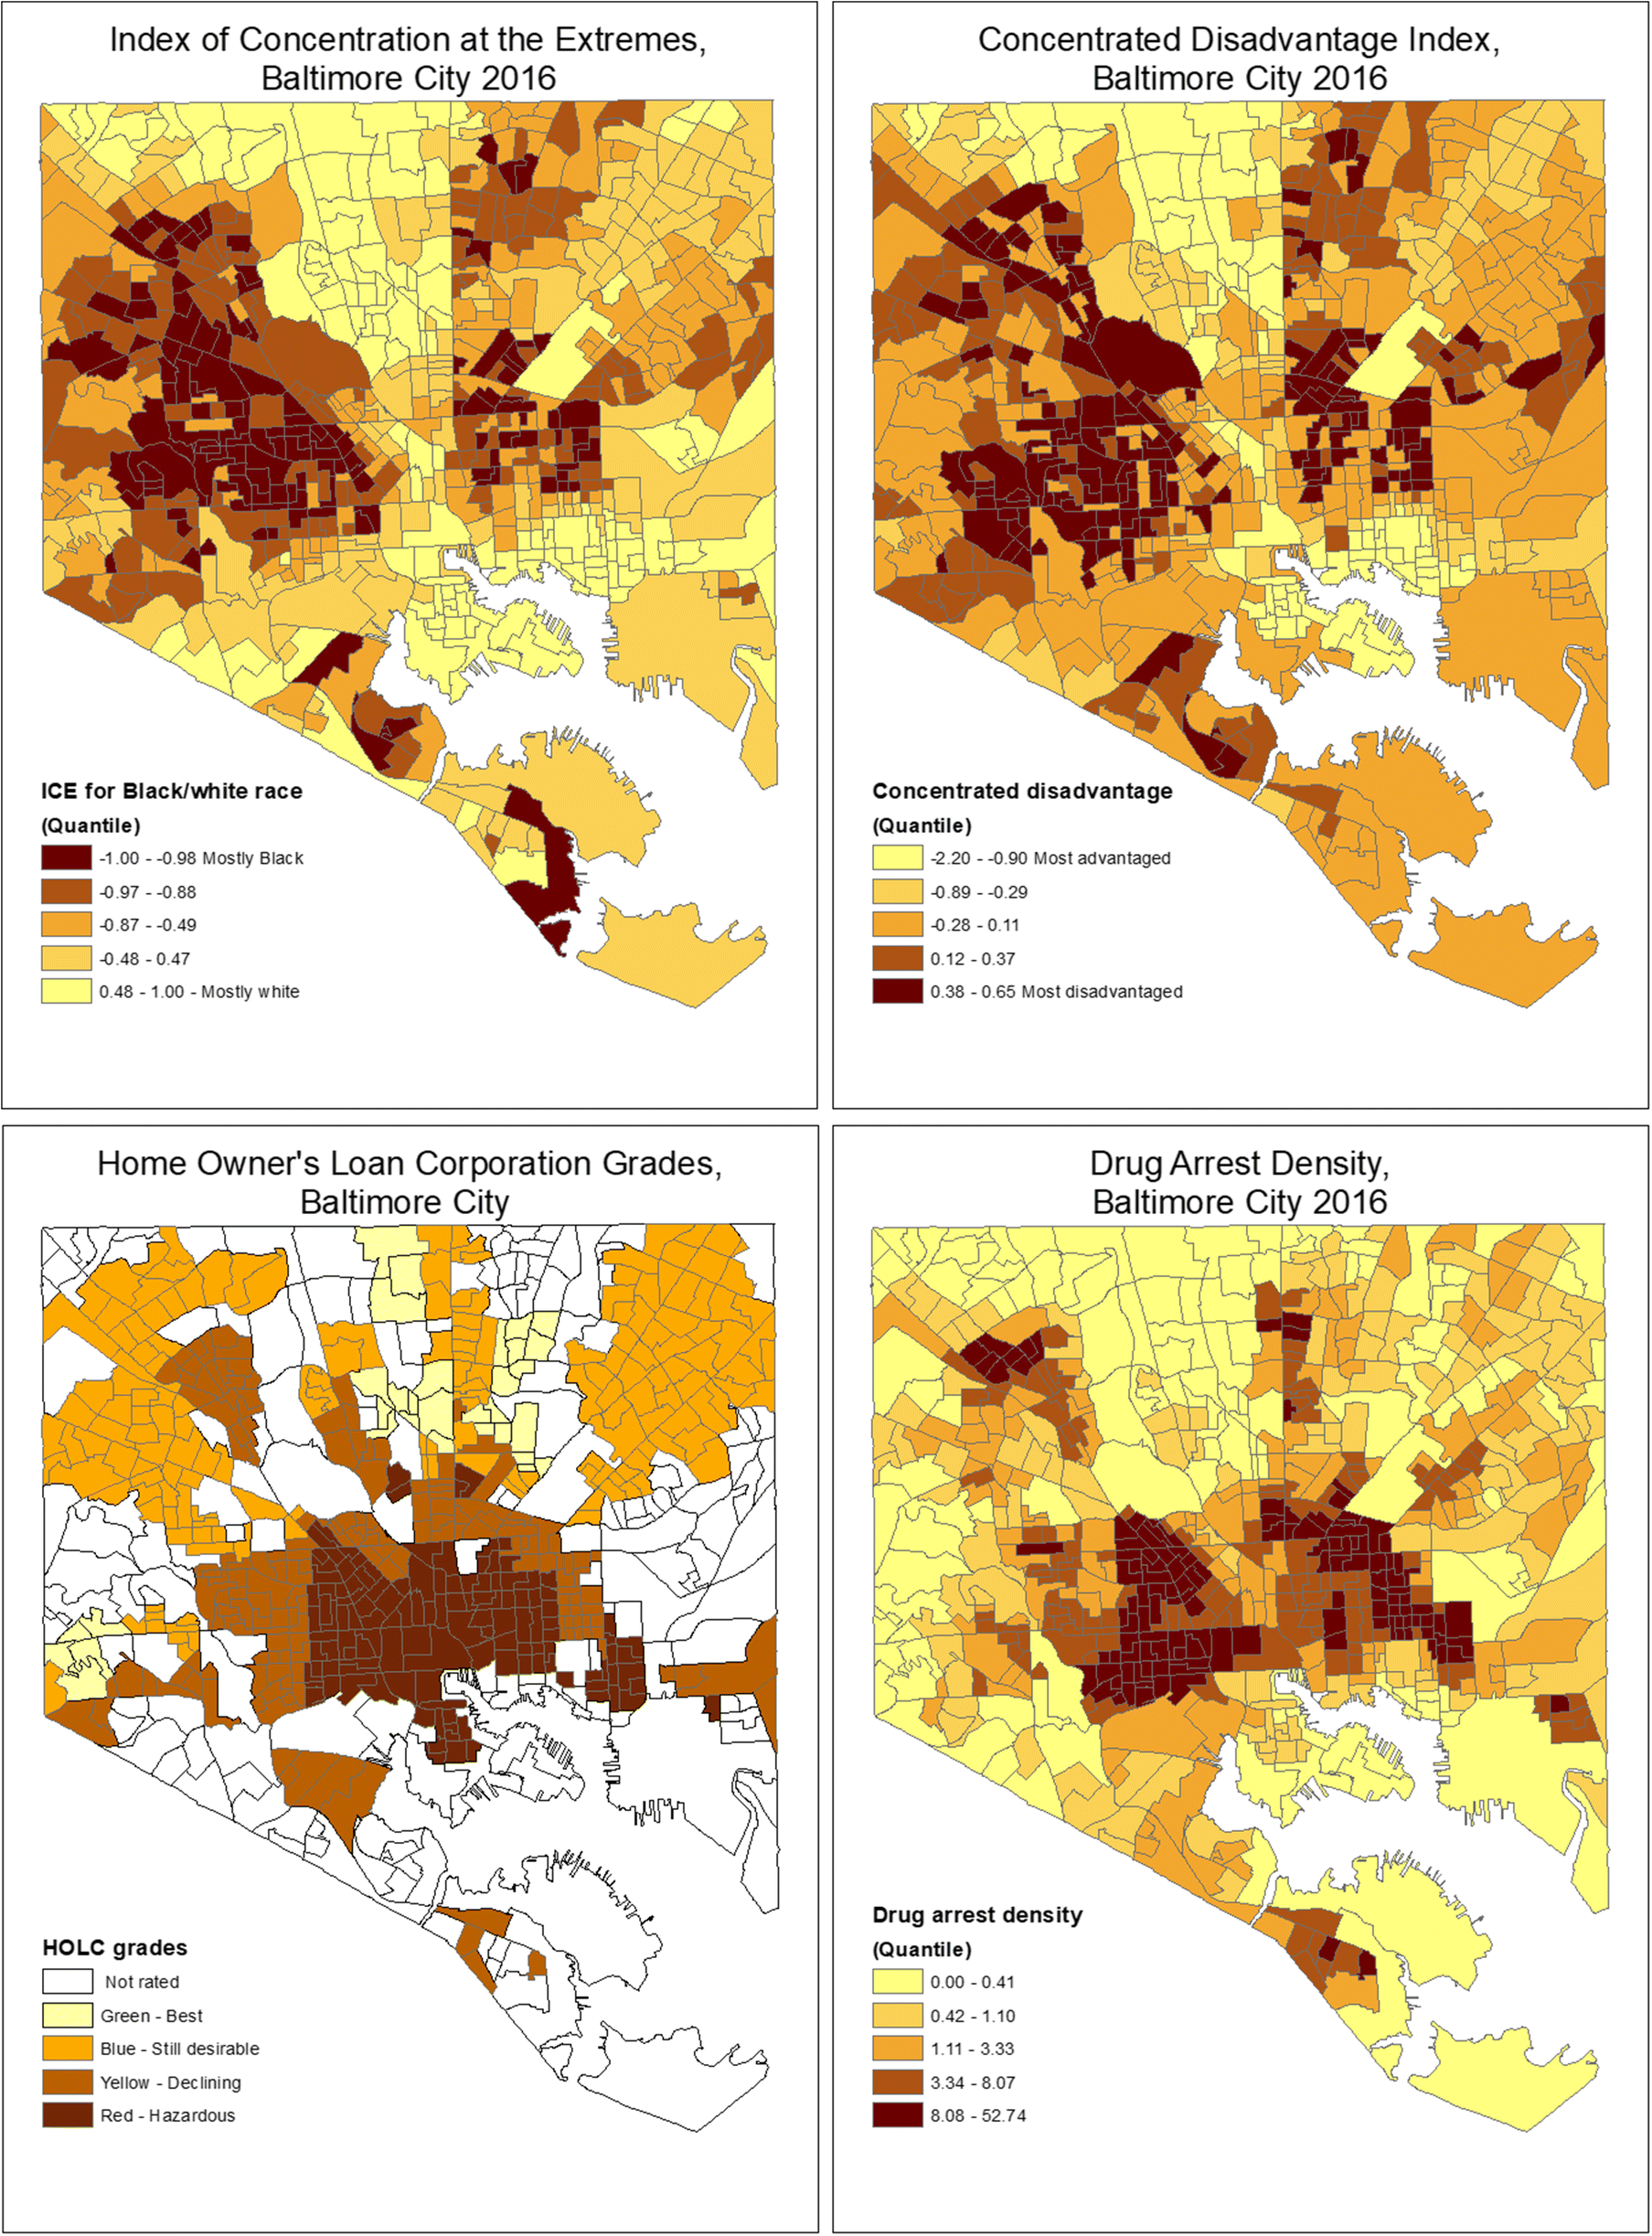 Alcohol Outlet Clusters and Population Disparities